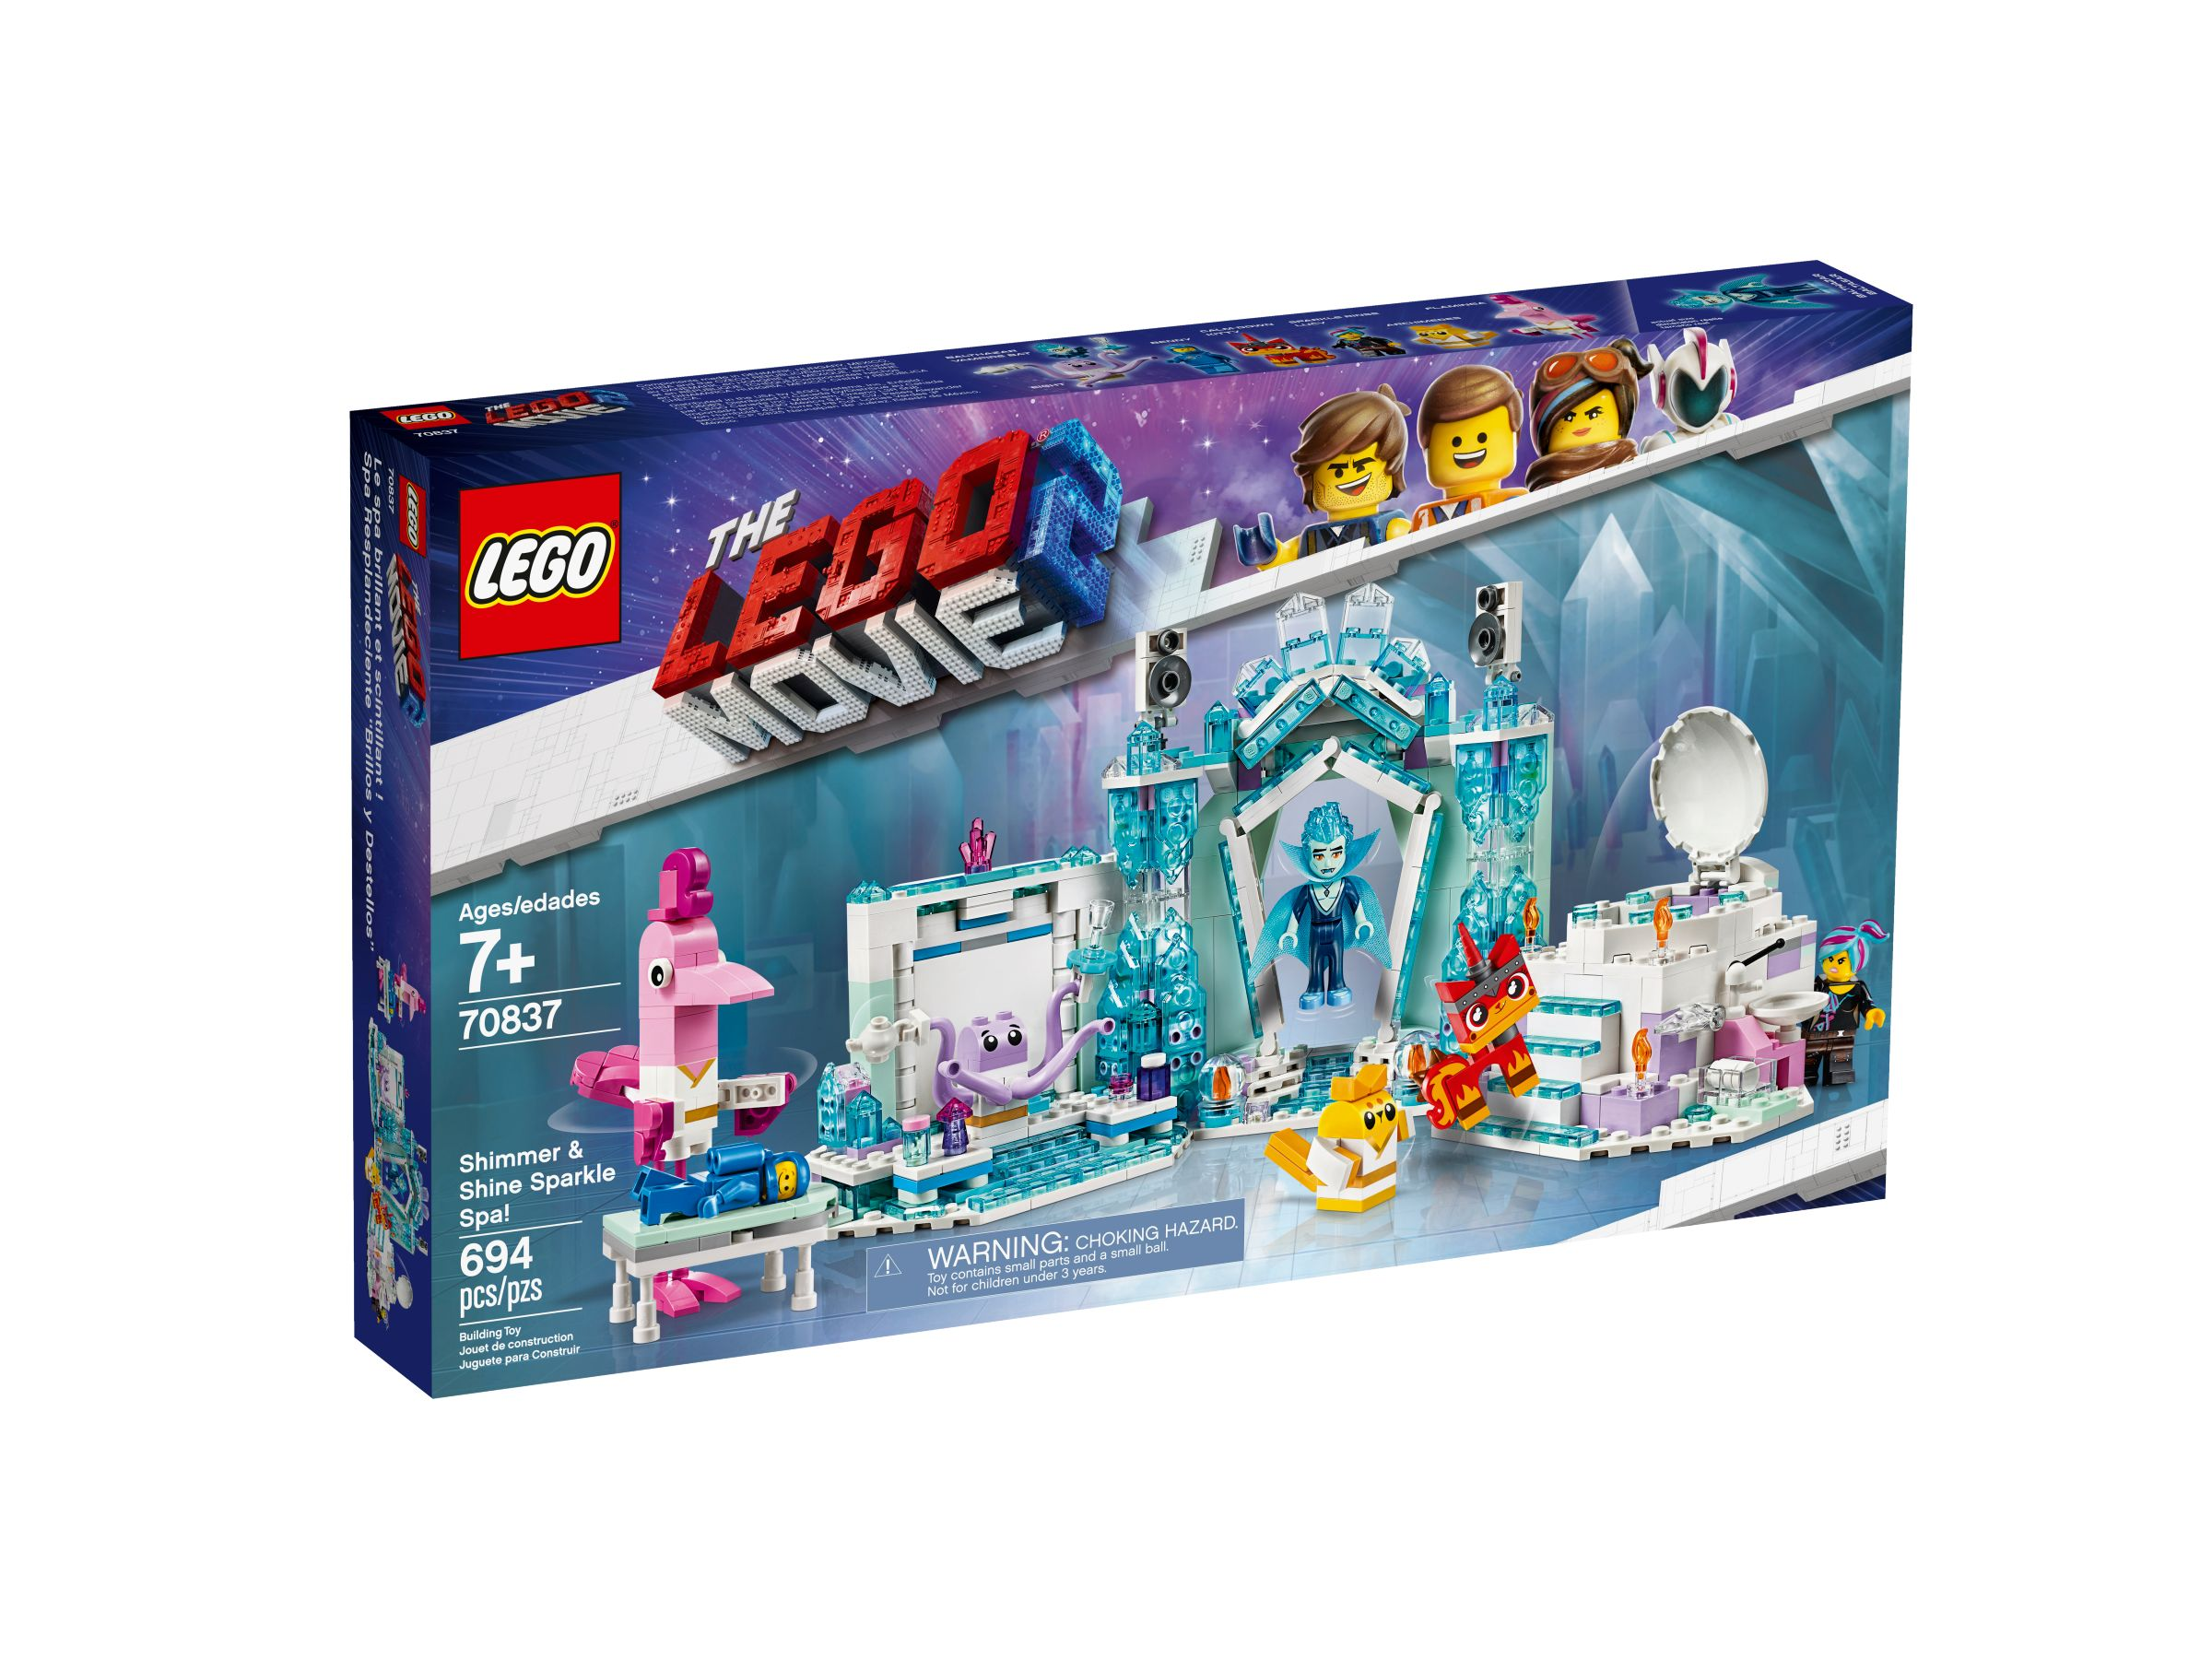 LEGO The Lego Movie 2 70837 Schimmerndes Glitzer-Spa! LEGO_70837_alt1.jpg